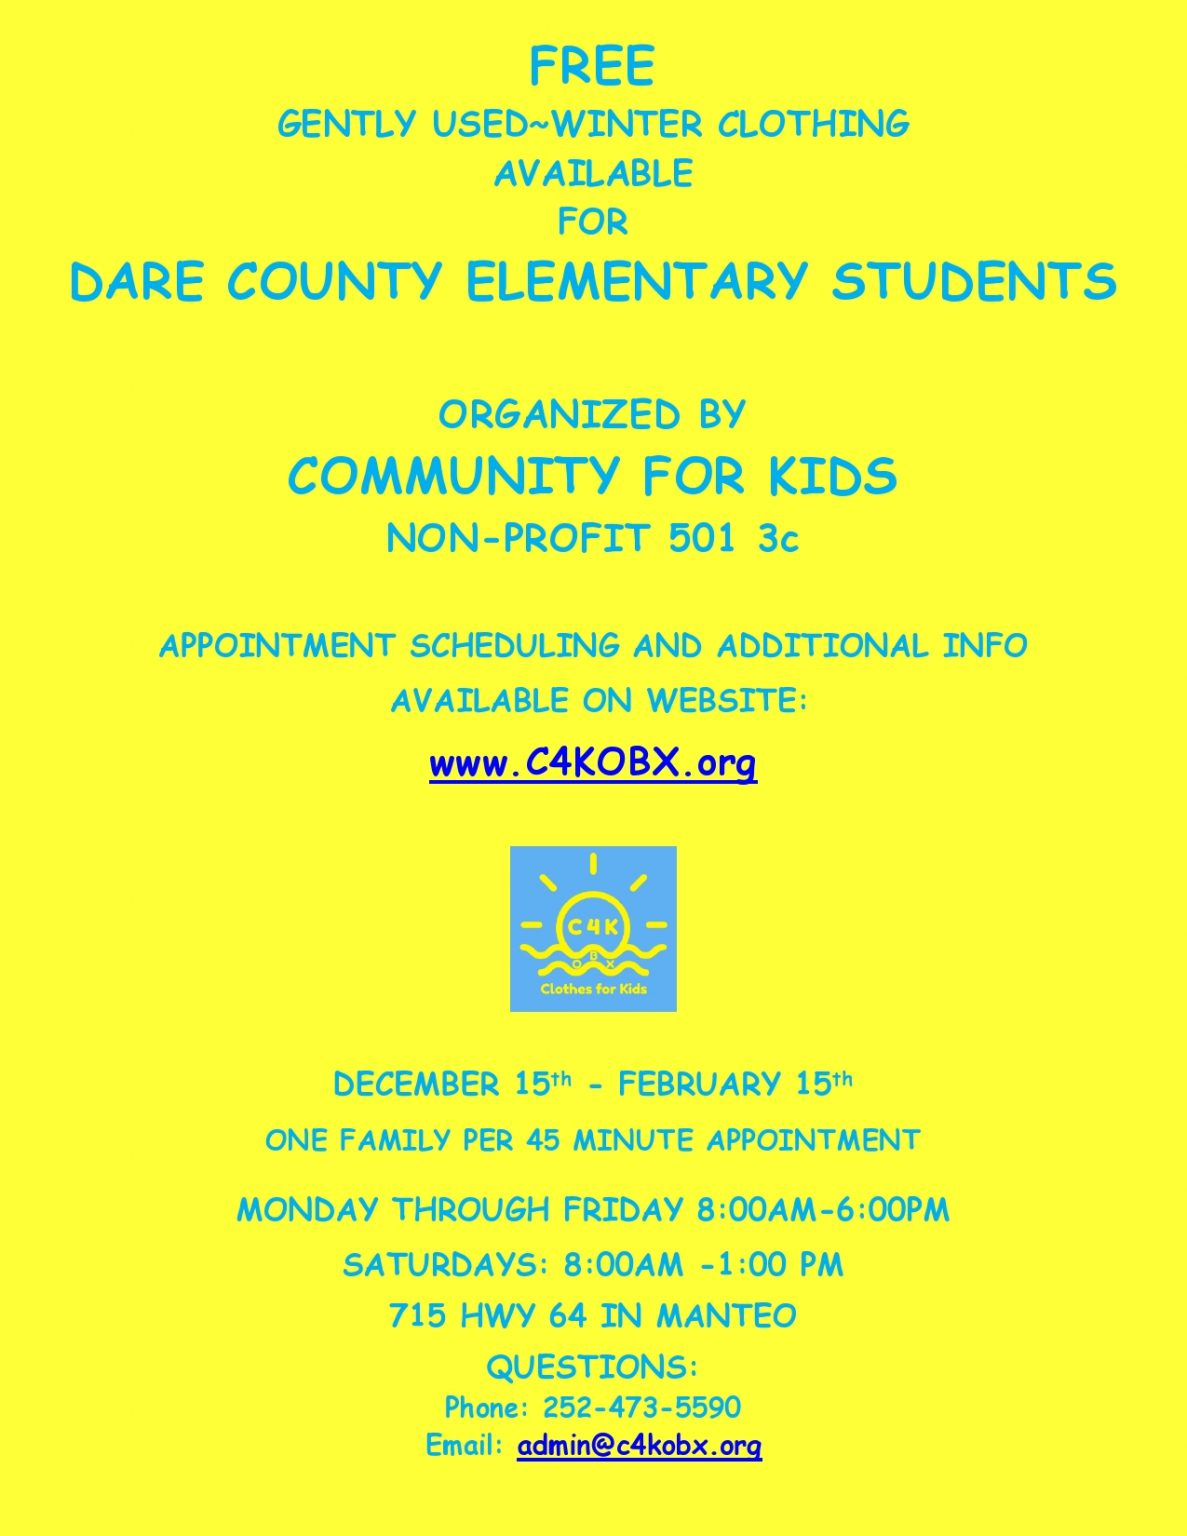 Podcast: Community For Kids Winter Clothes Drive Launches For Dare Elementary Students - 99.1 With Regard To Dare County School Calendar 2020 2021